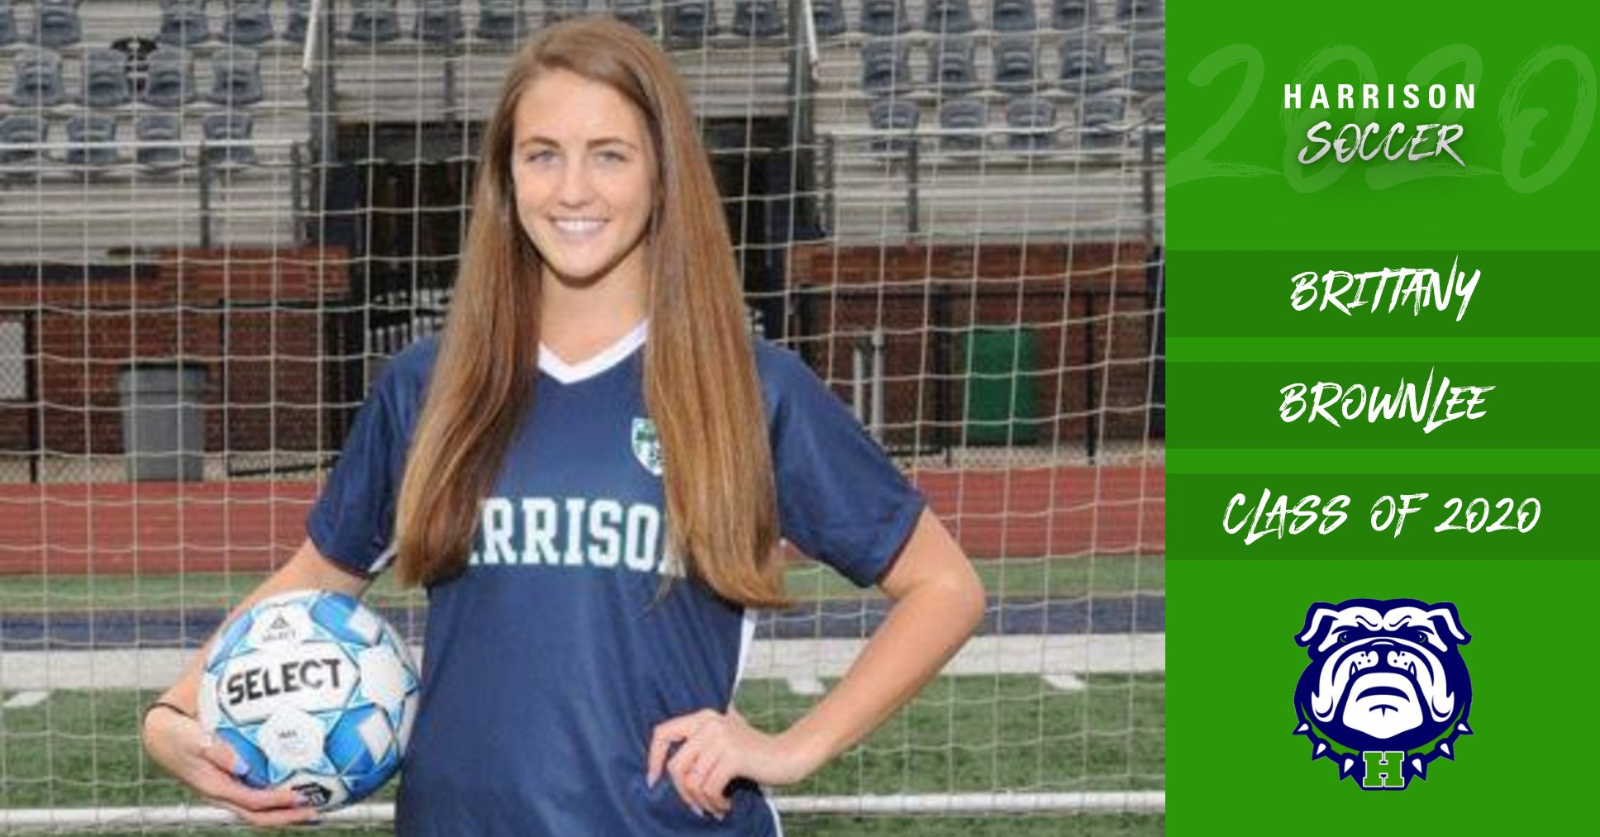 Senior Night Article – Brittany Brownlee